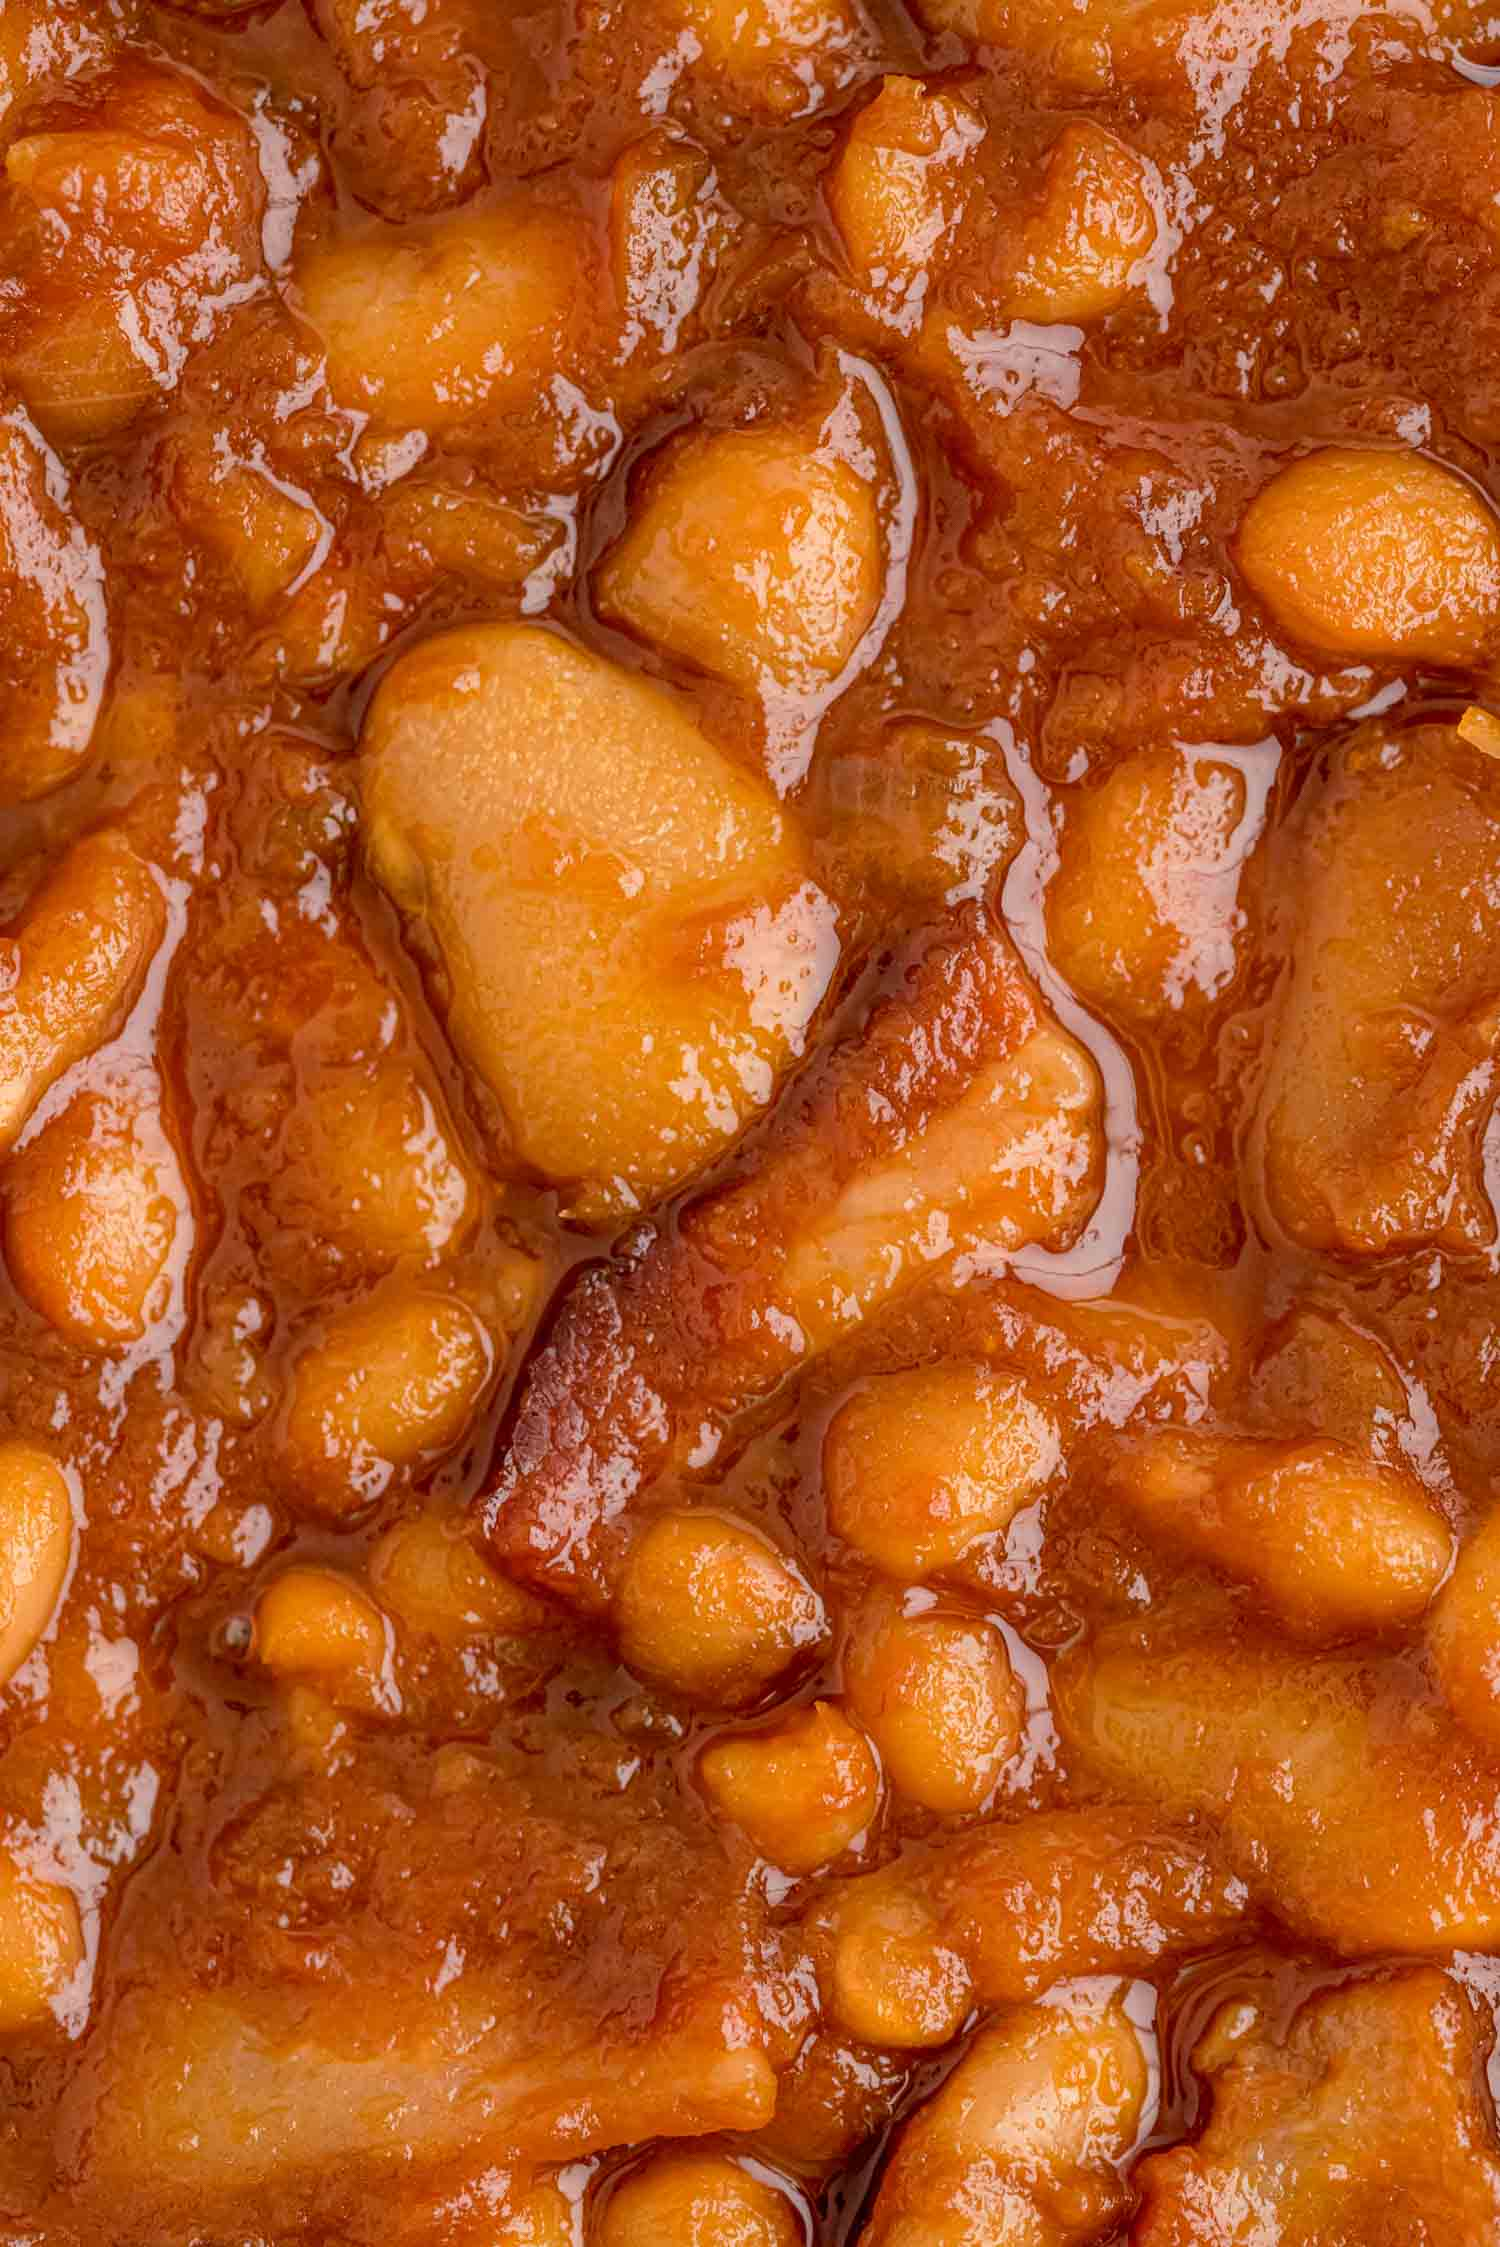 Very close up view of baked great northern and butter beans.